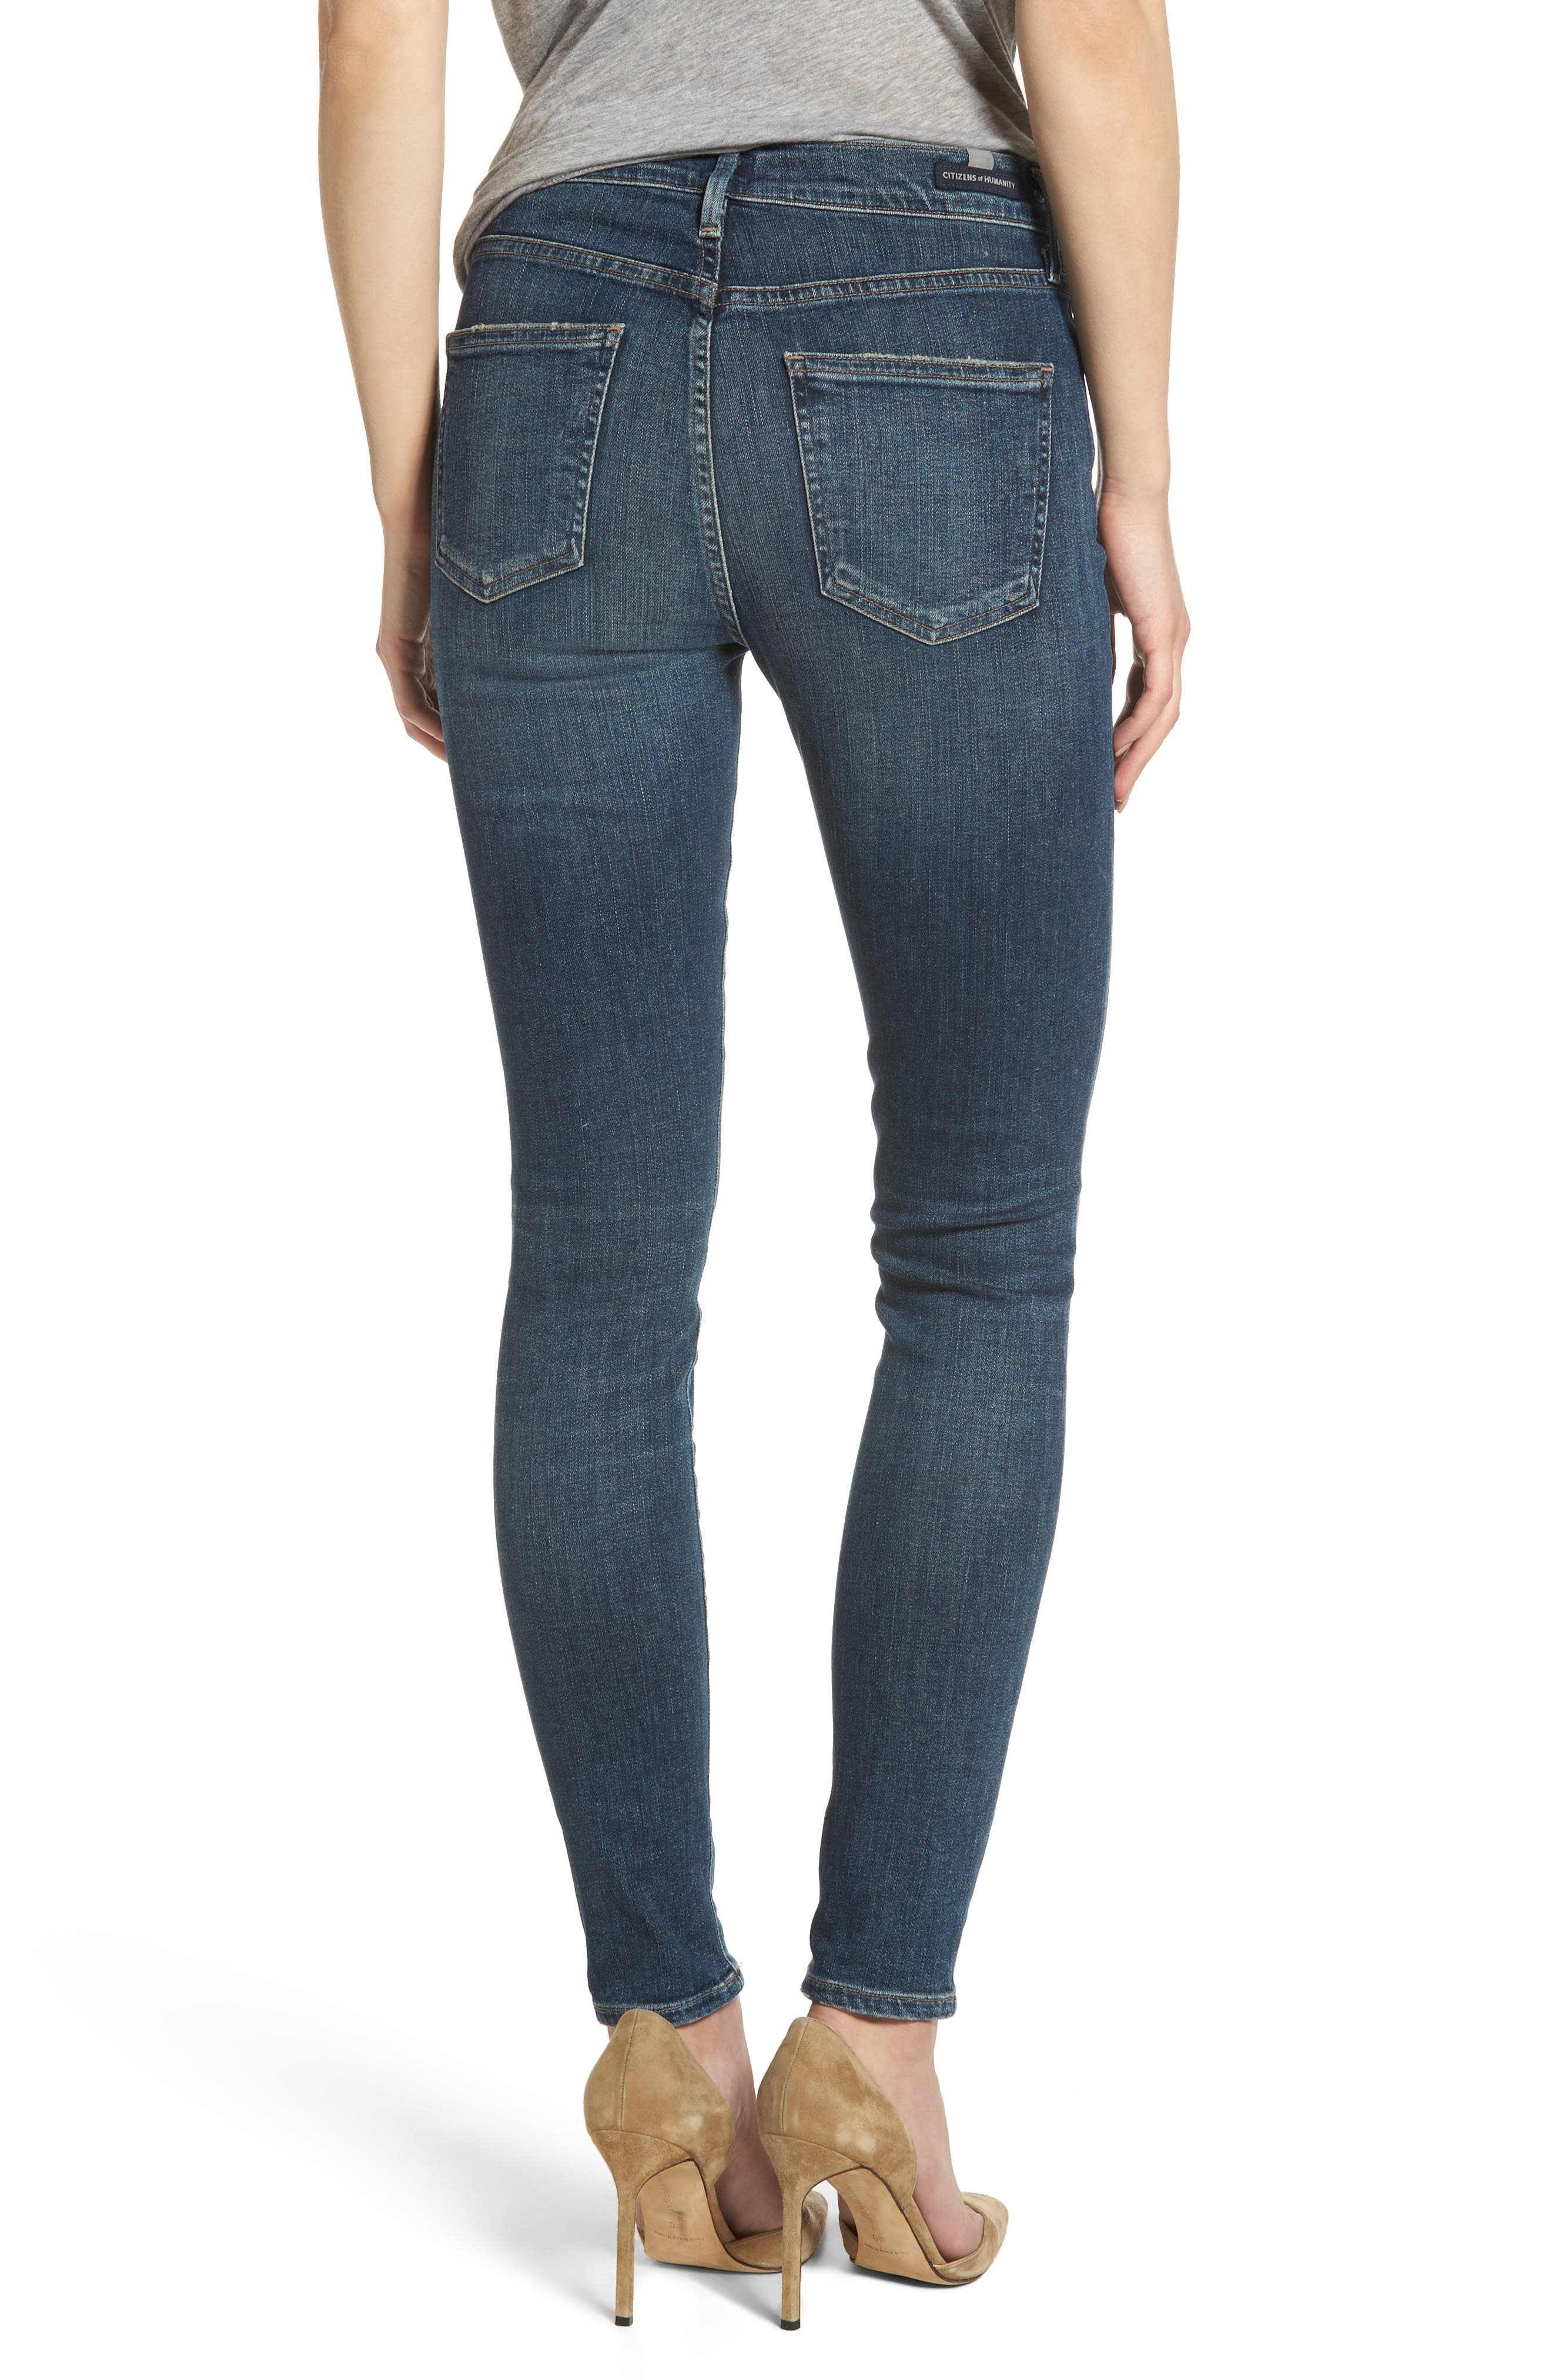 Rocket High Waist Skinny Jeans,                             Alternate thumbnail 2, color,                             Rival